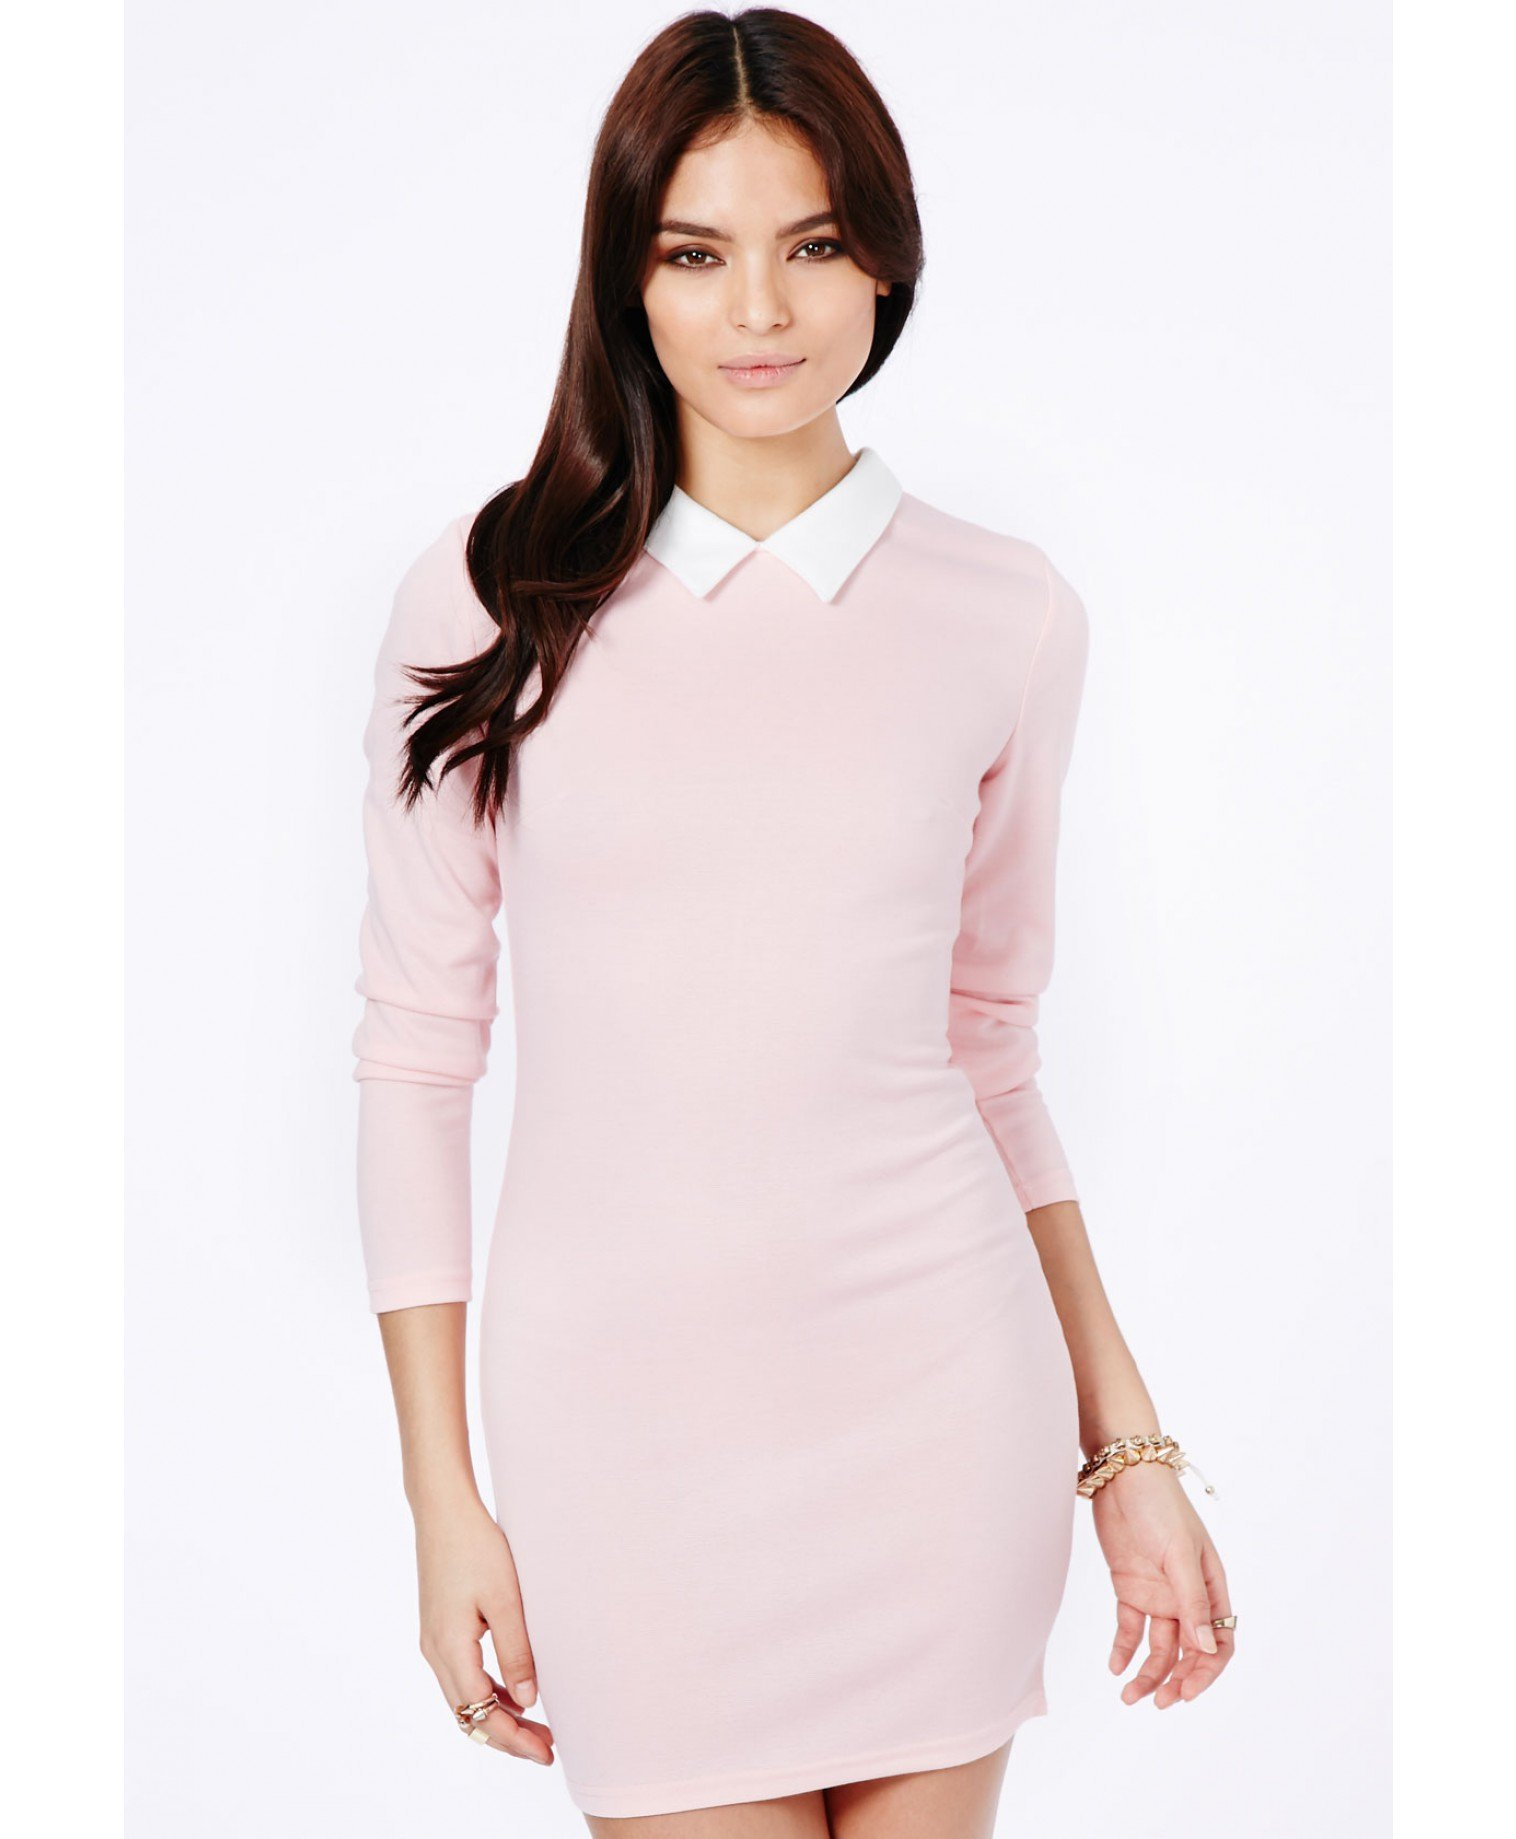 white dress with pink collar - Google Search